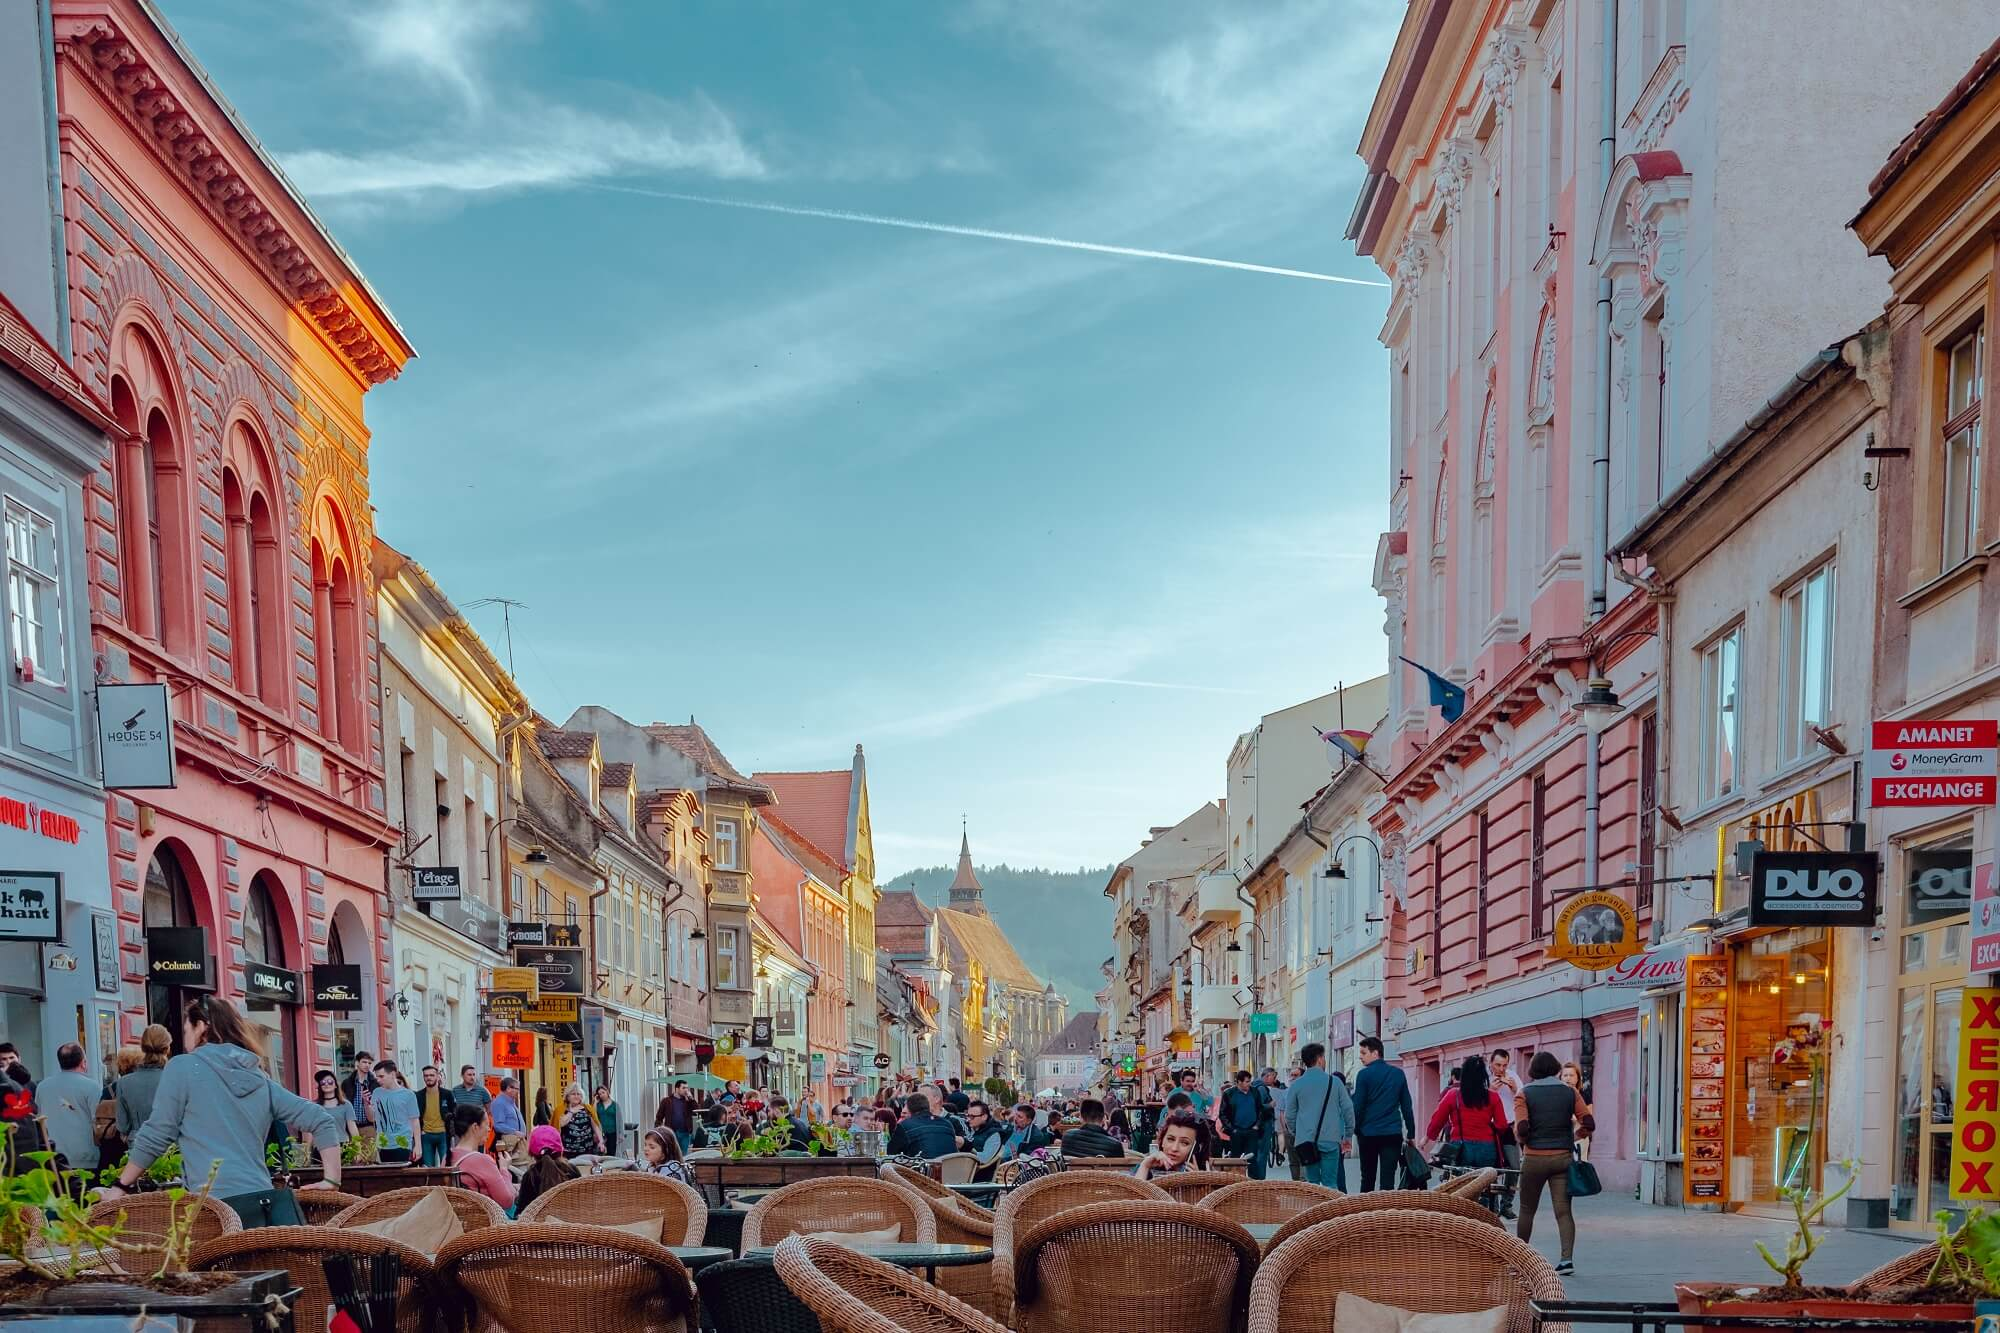 Travel Guide to Romania: From Quaint Towns to Charming Cities